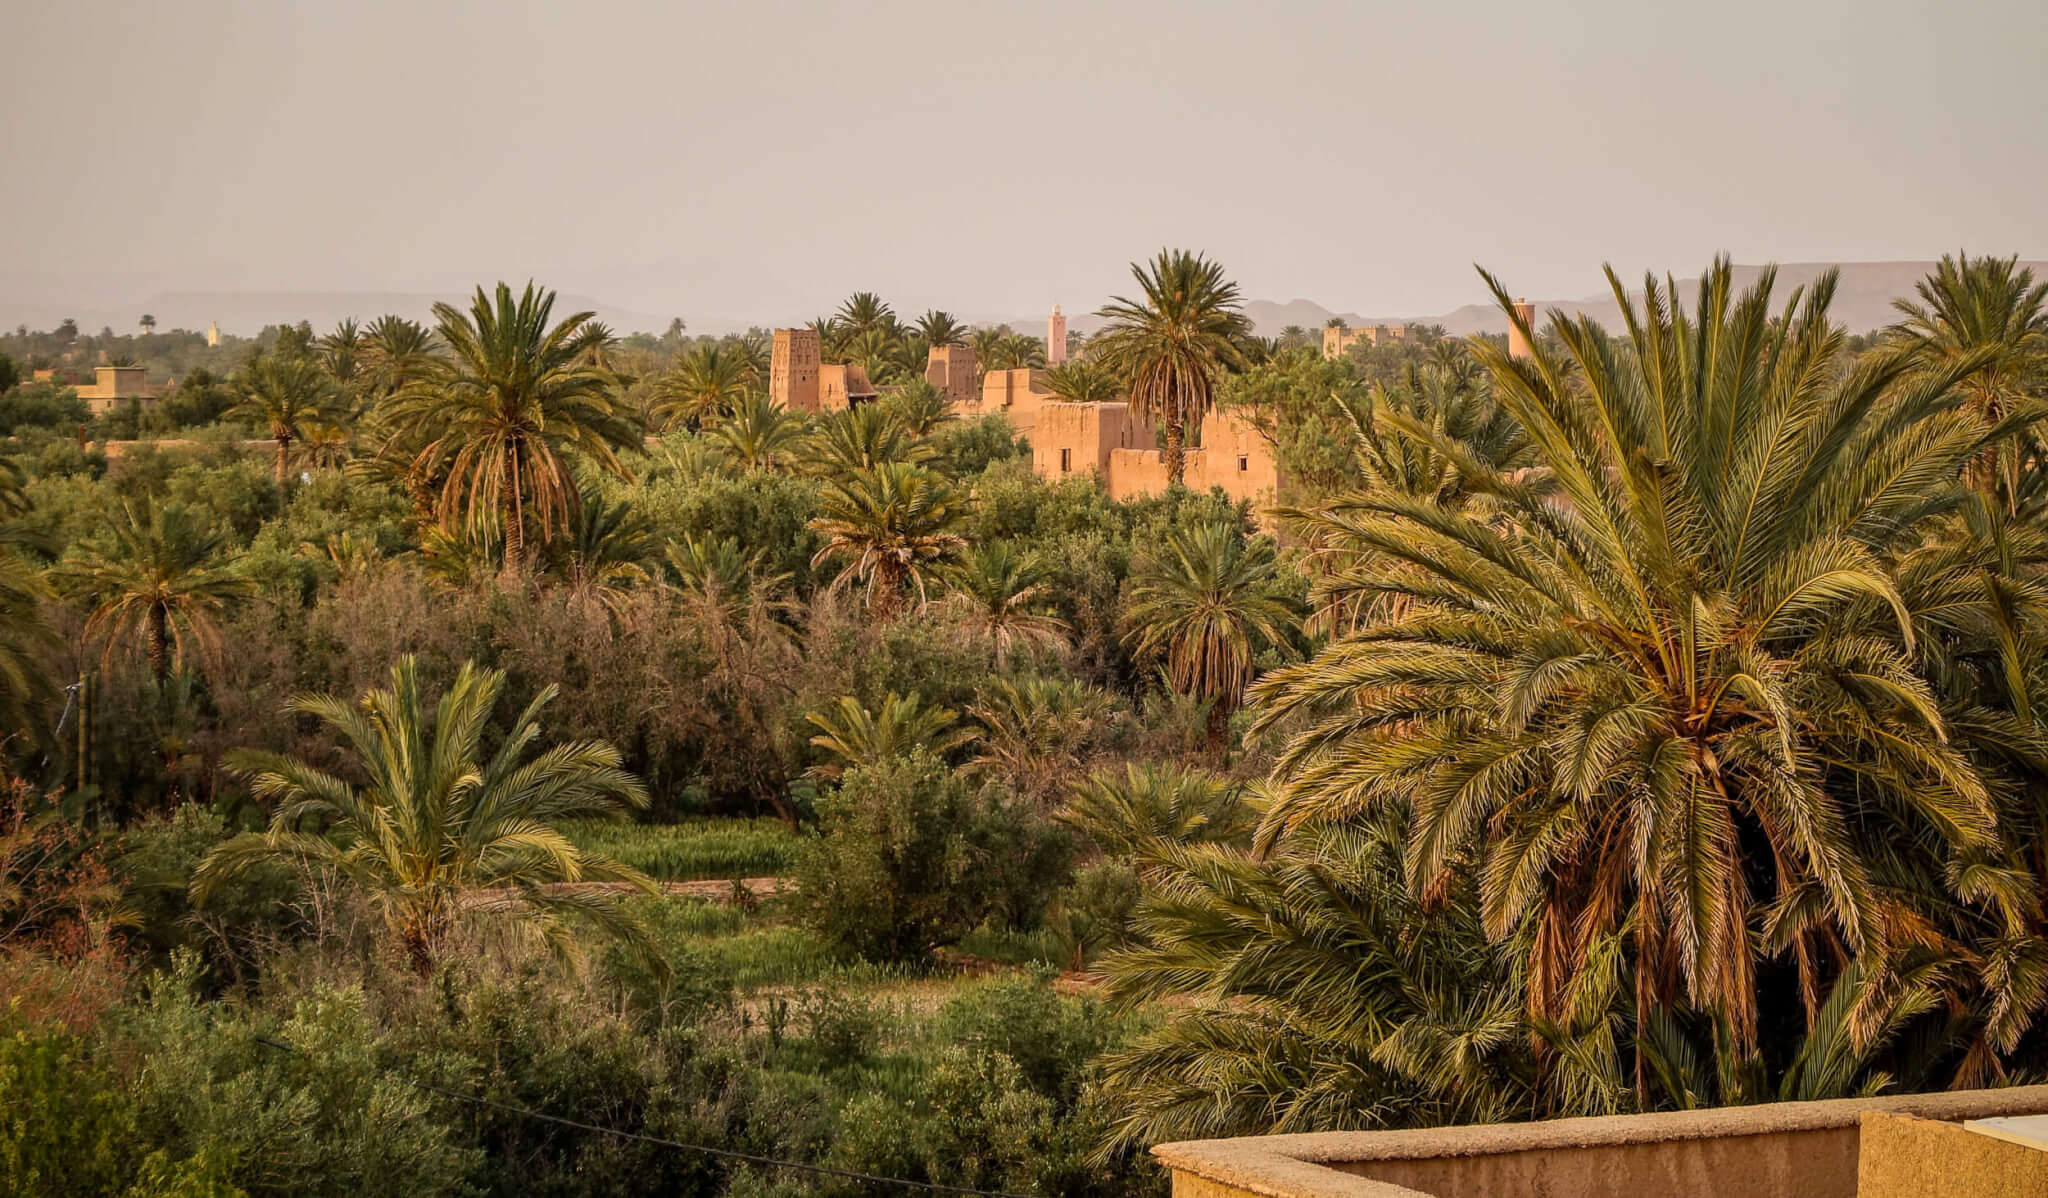 Skoura Kasbahs in palm grove